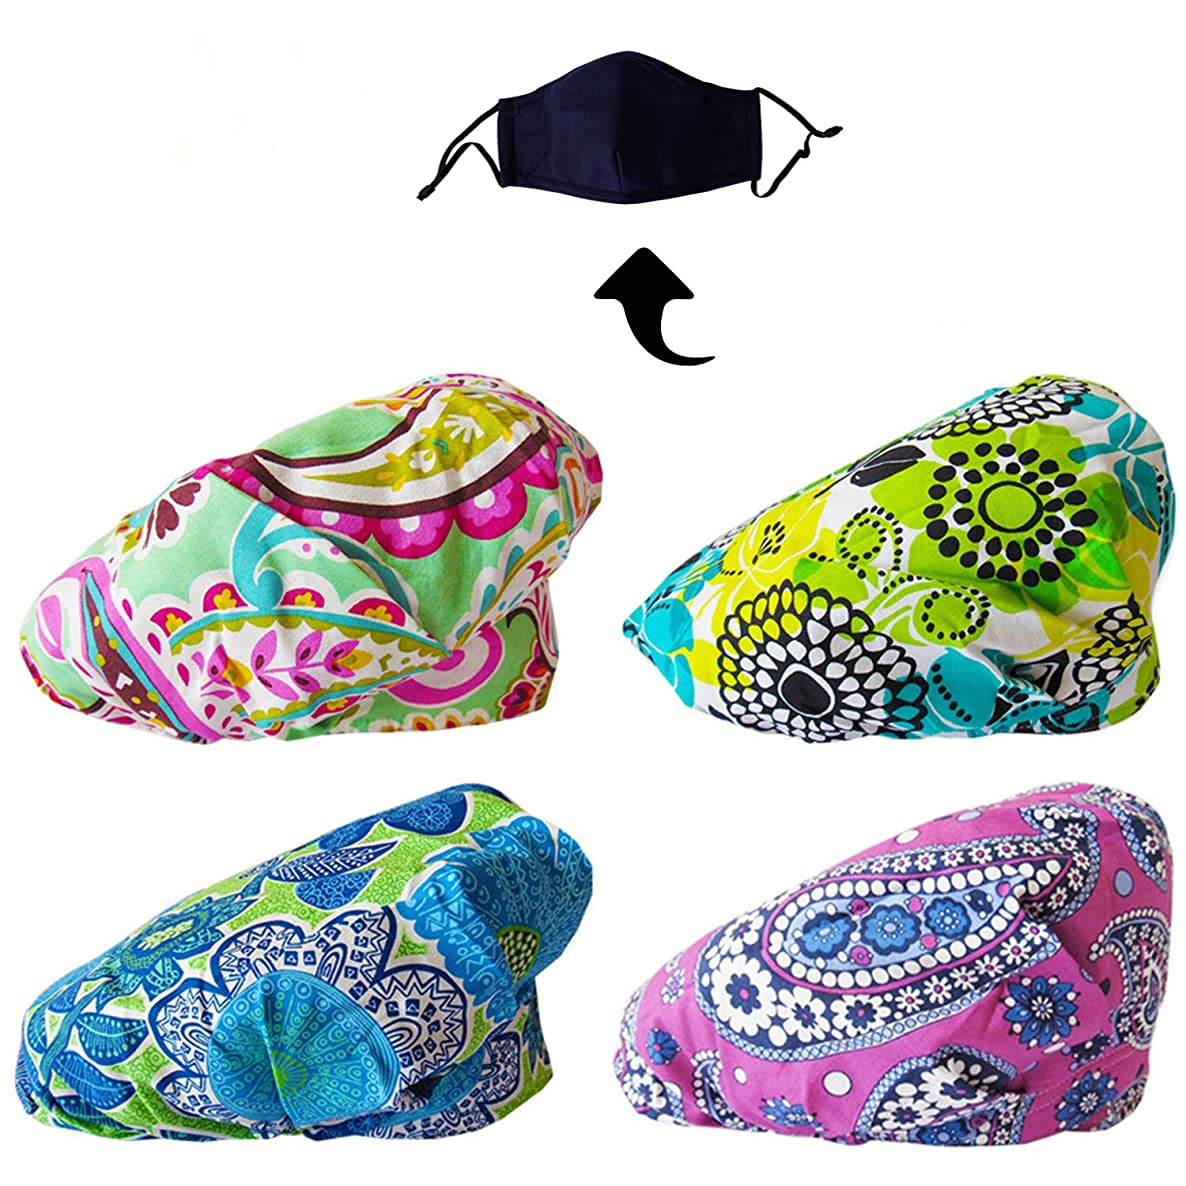 JoyRing 4 Pack Adjustable Surgical Scrub Cap Medical Doctor Bouffant Hats with Sweatband